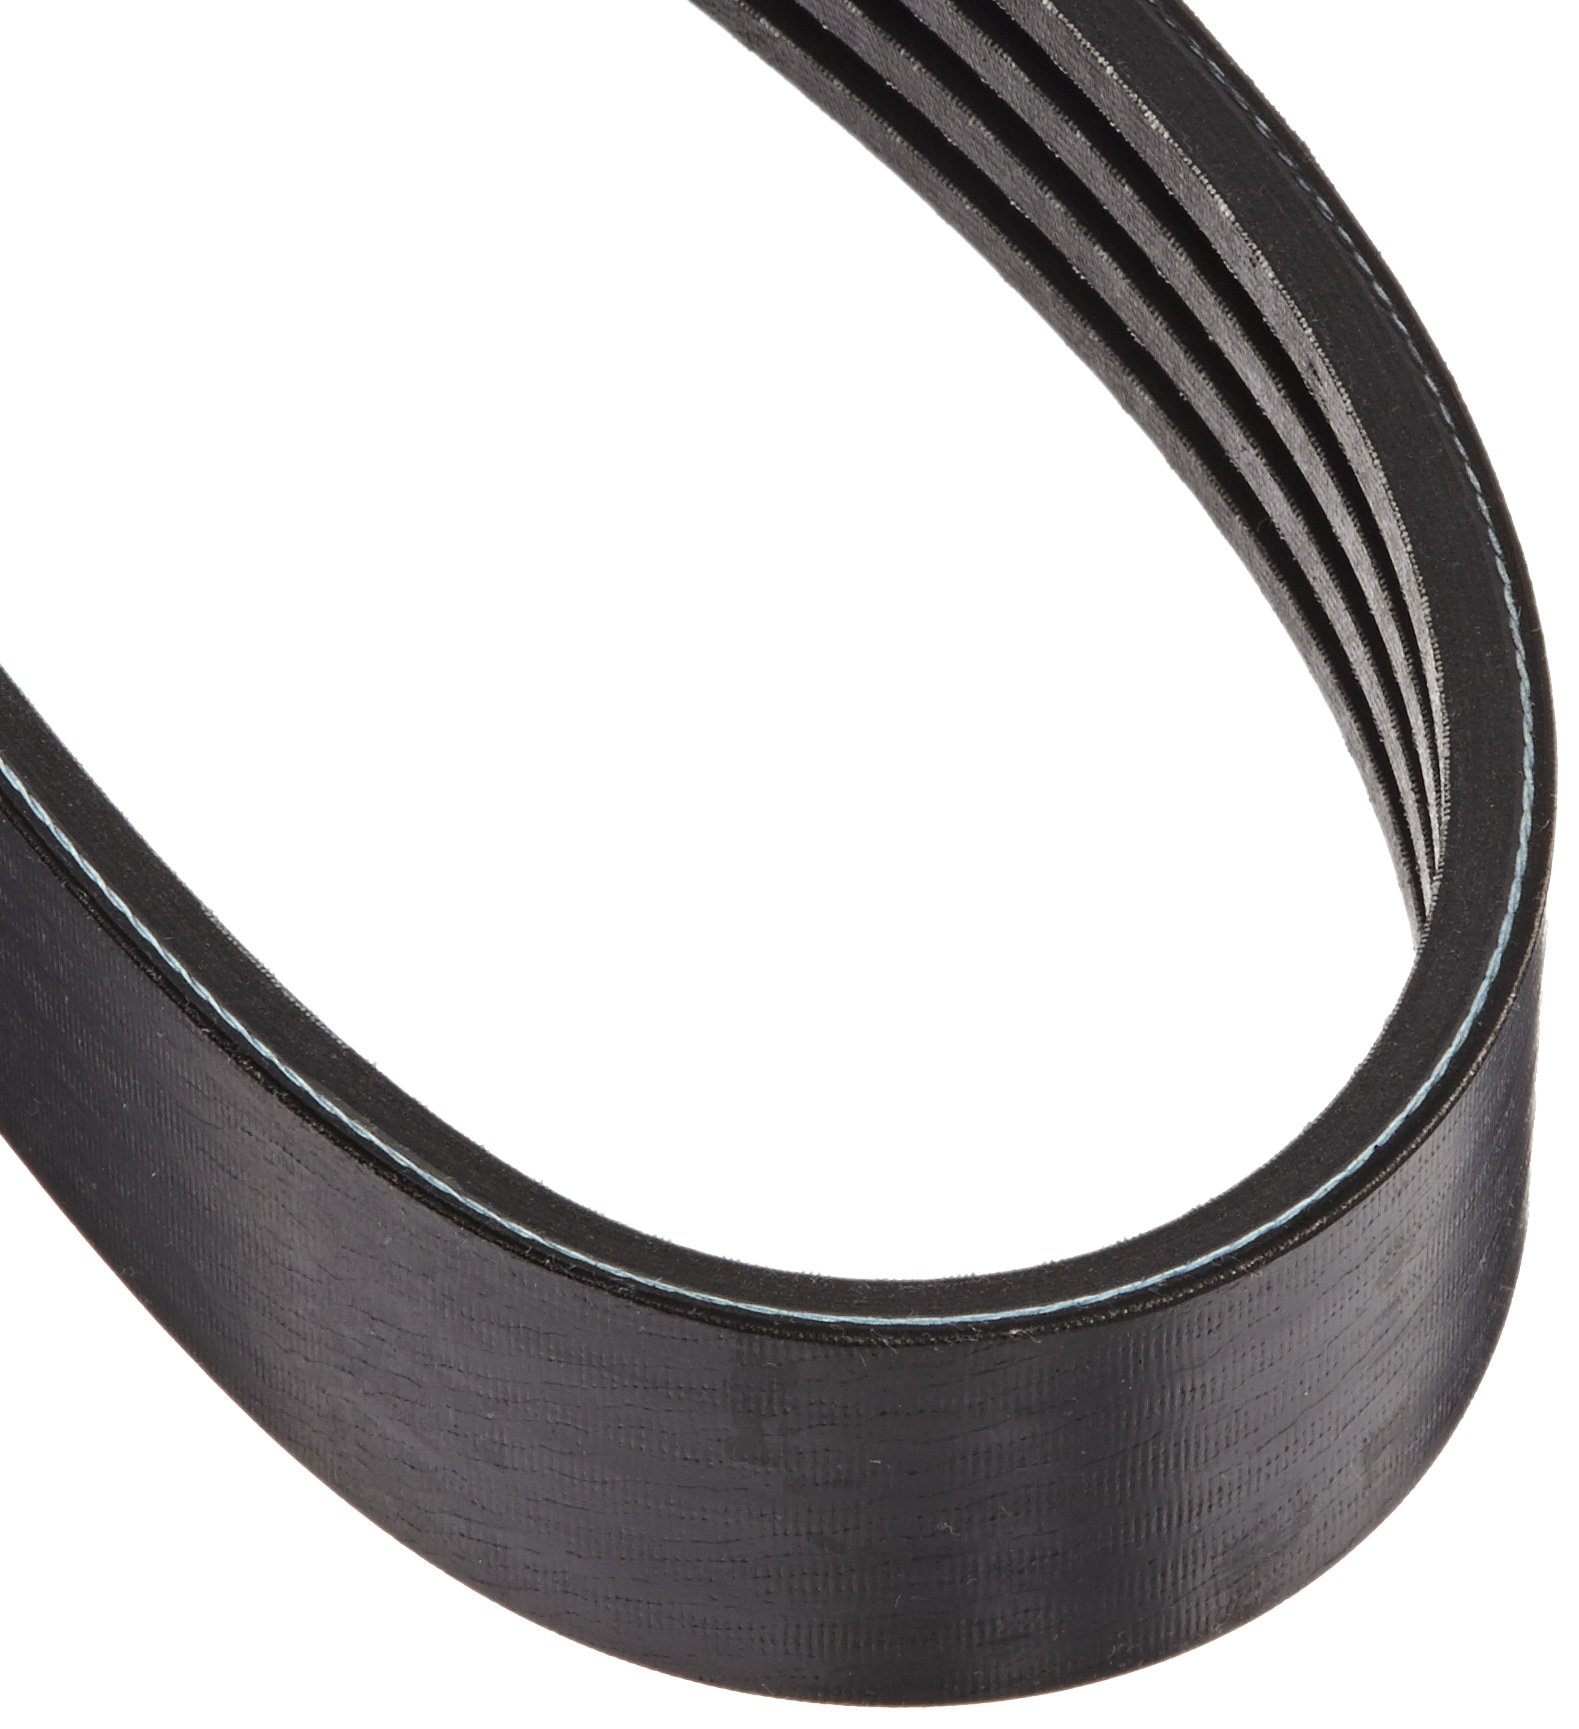 "Gates 4/3V560 Super HC Powerband Belt, 3V Section, 1-1/2"" Overall Width, 21/64"" Height, 56"" Belt Outside Circumference"